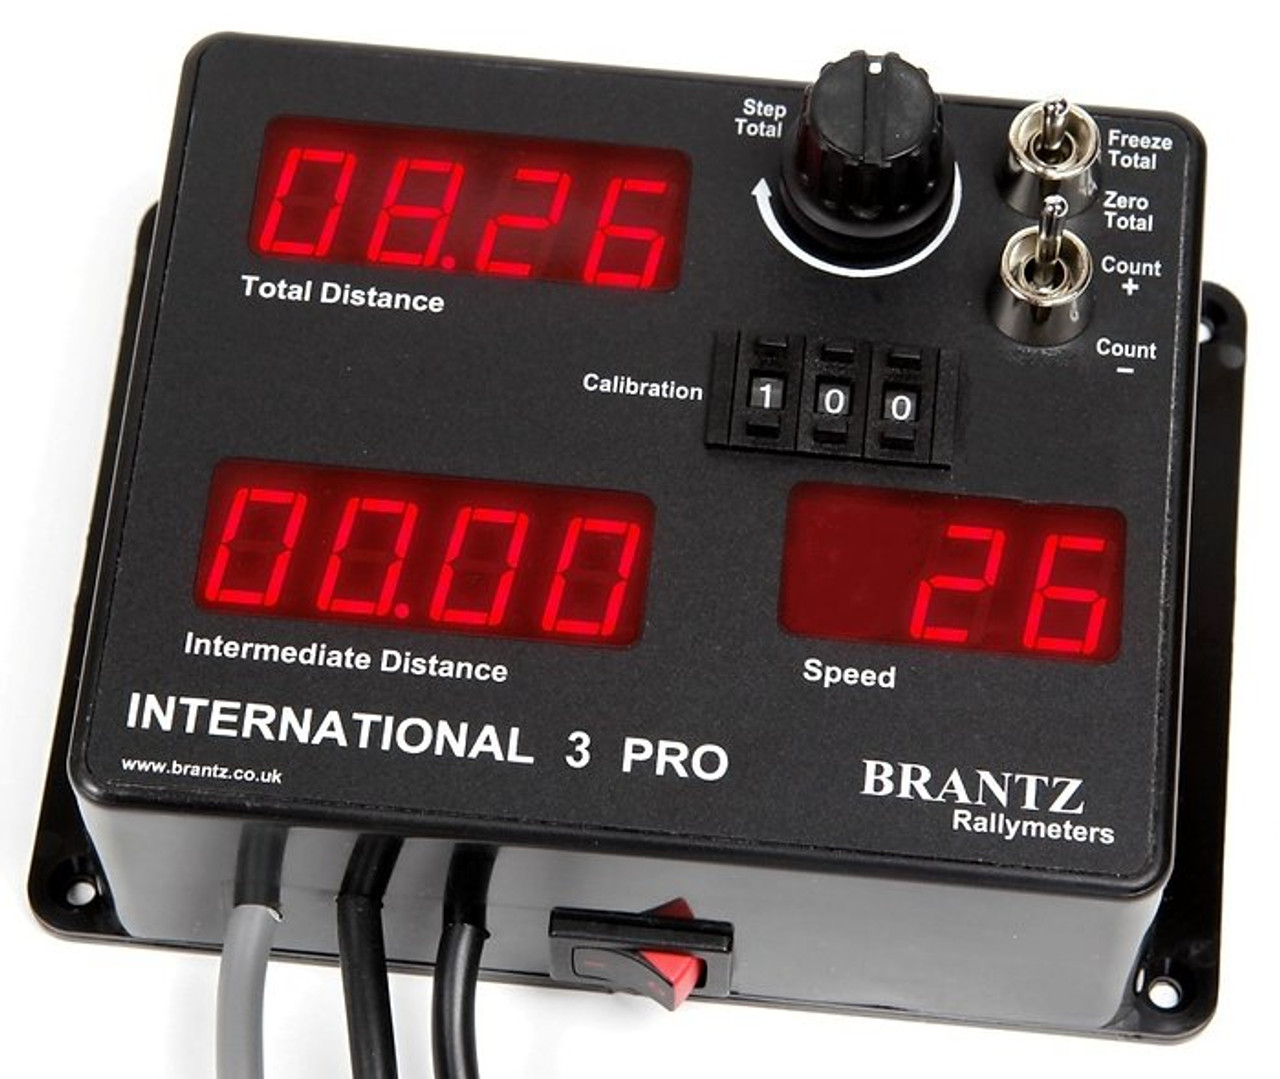 Brantz International 3 Pro (BR8)